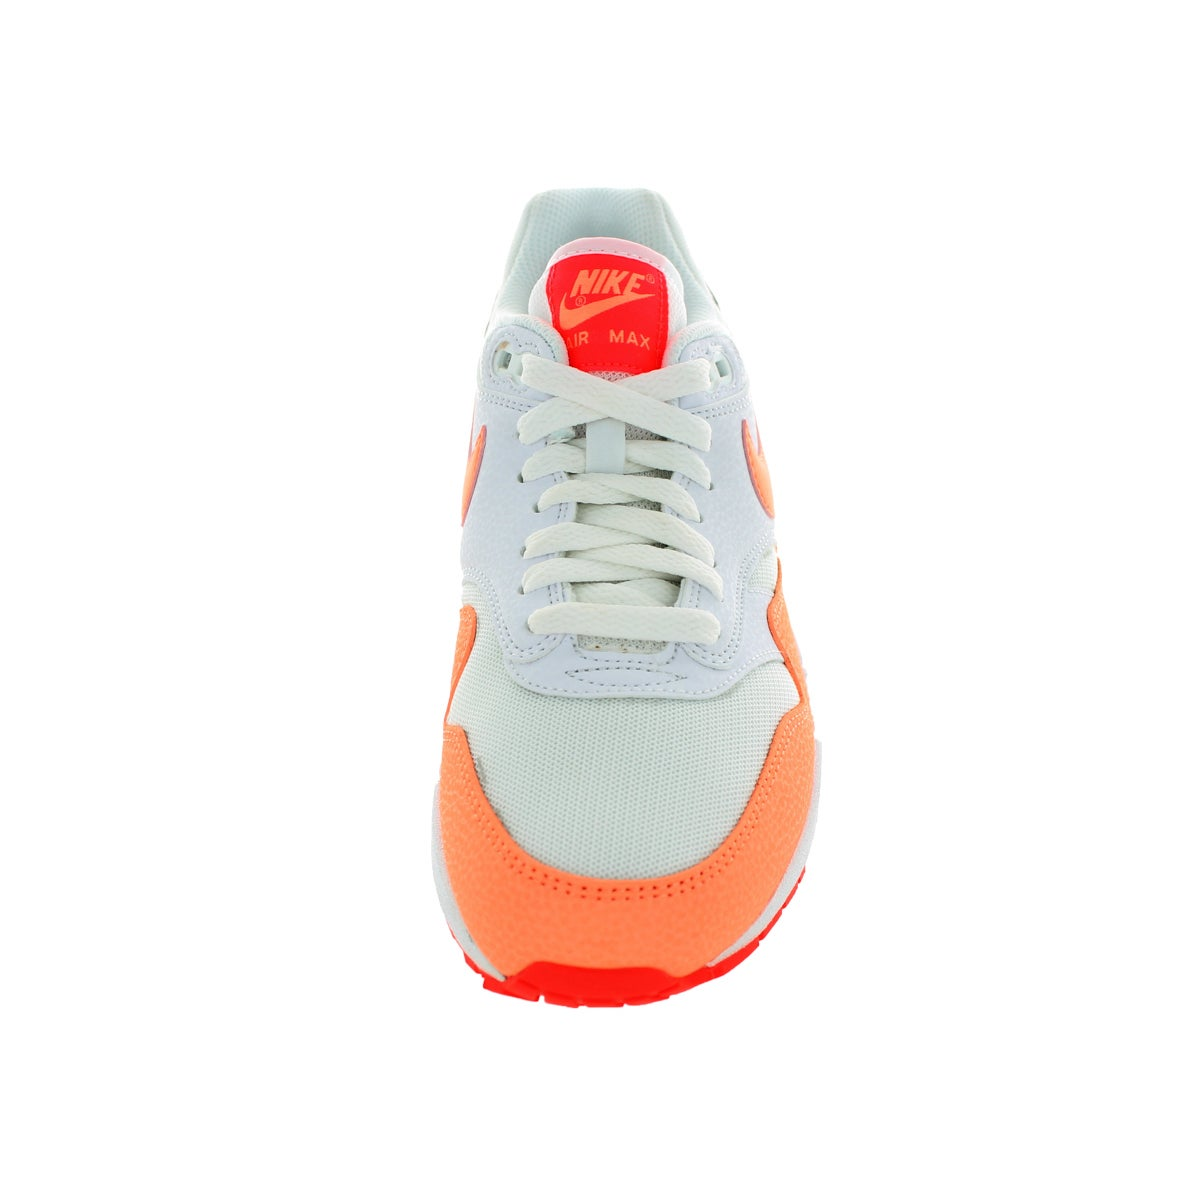 super popular 030bd ebff9 Shop Nike Women s Air Max 1 Essential White Sunset Glow Hot Lava Running  Shoe - Free Shipping Today - Overstock - 12322518